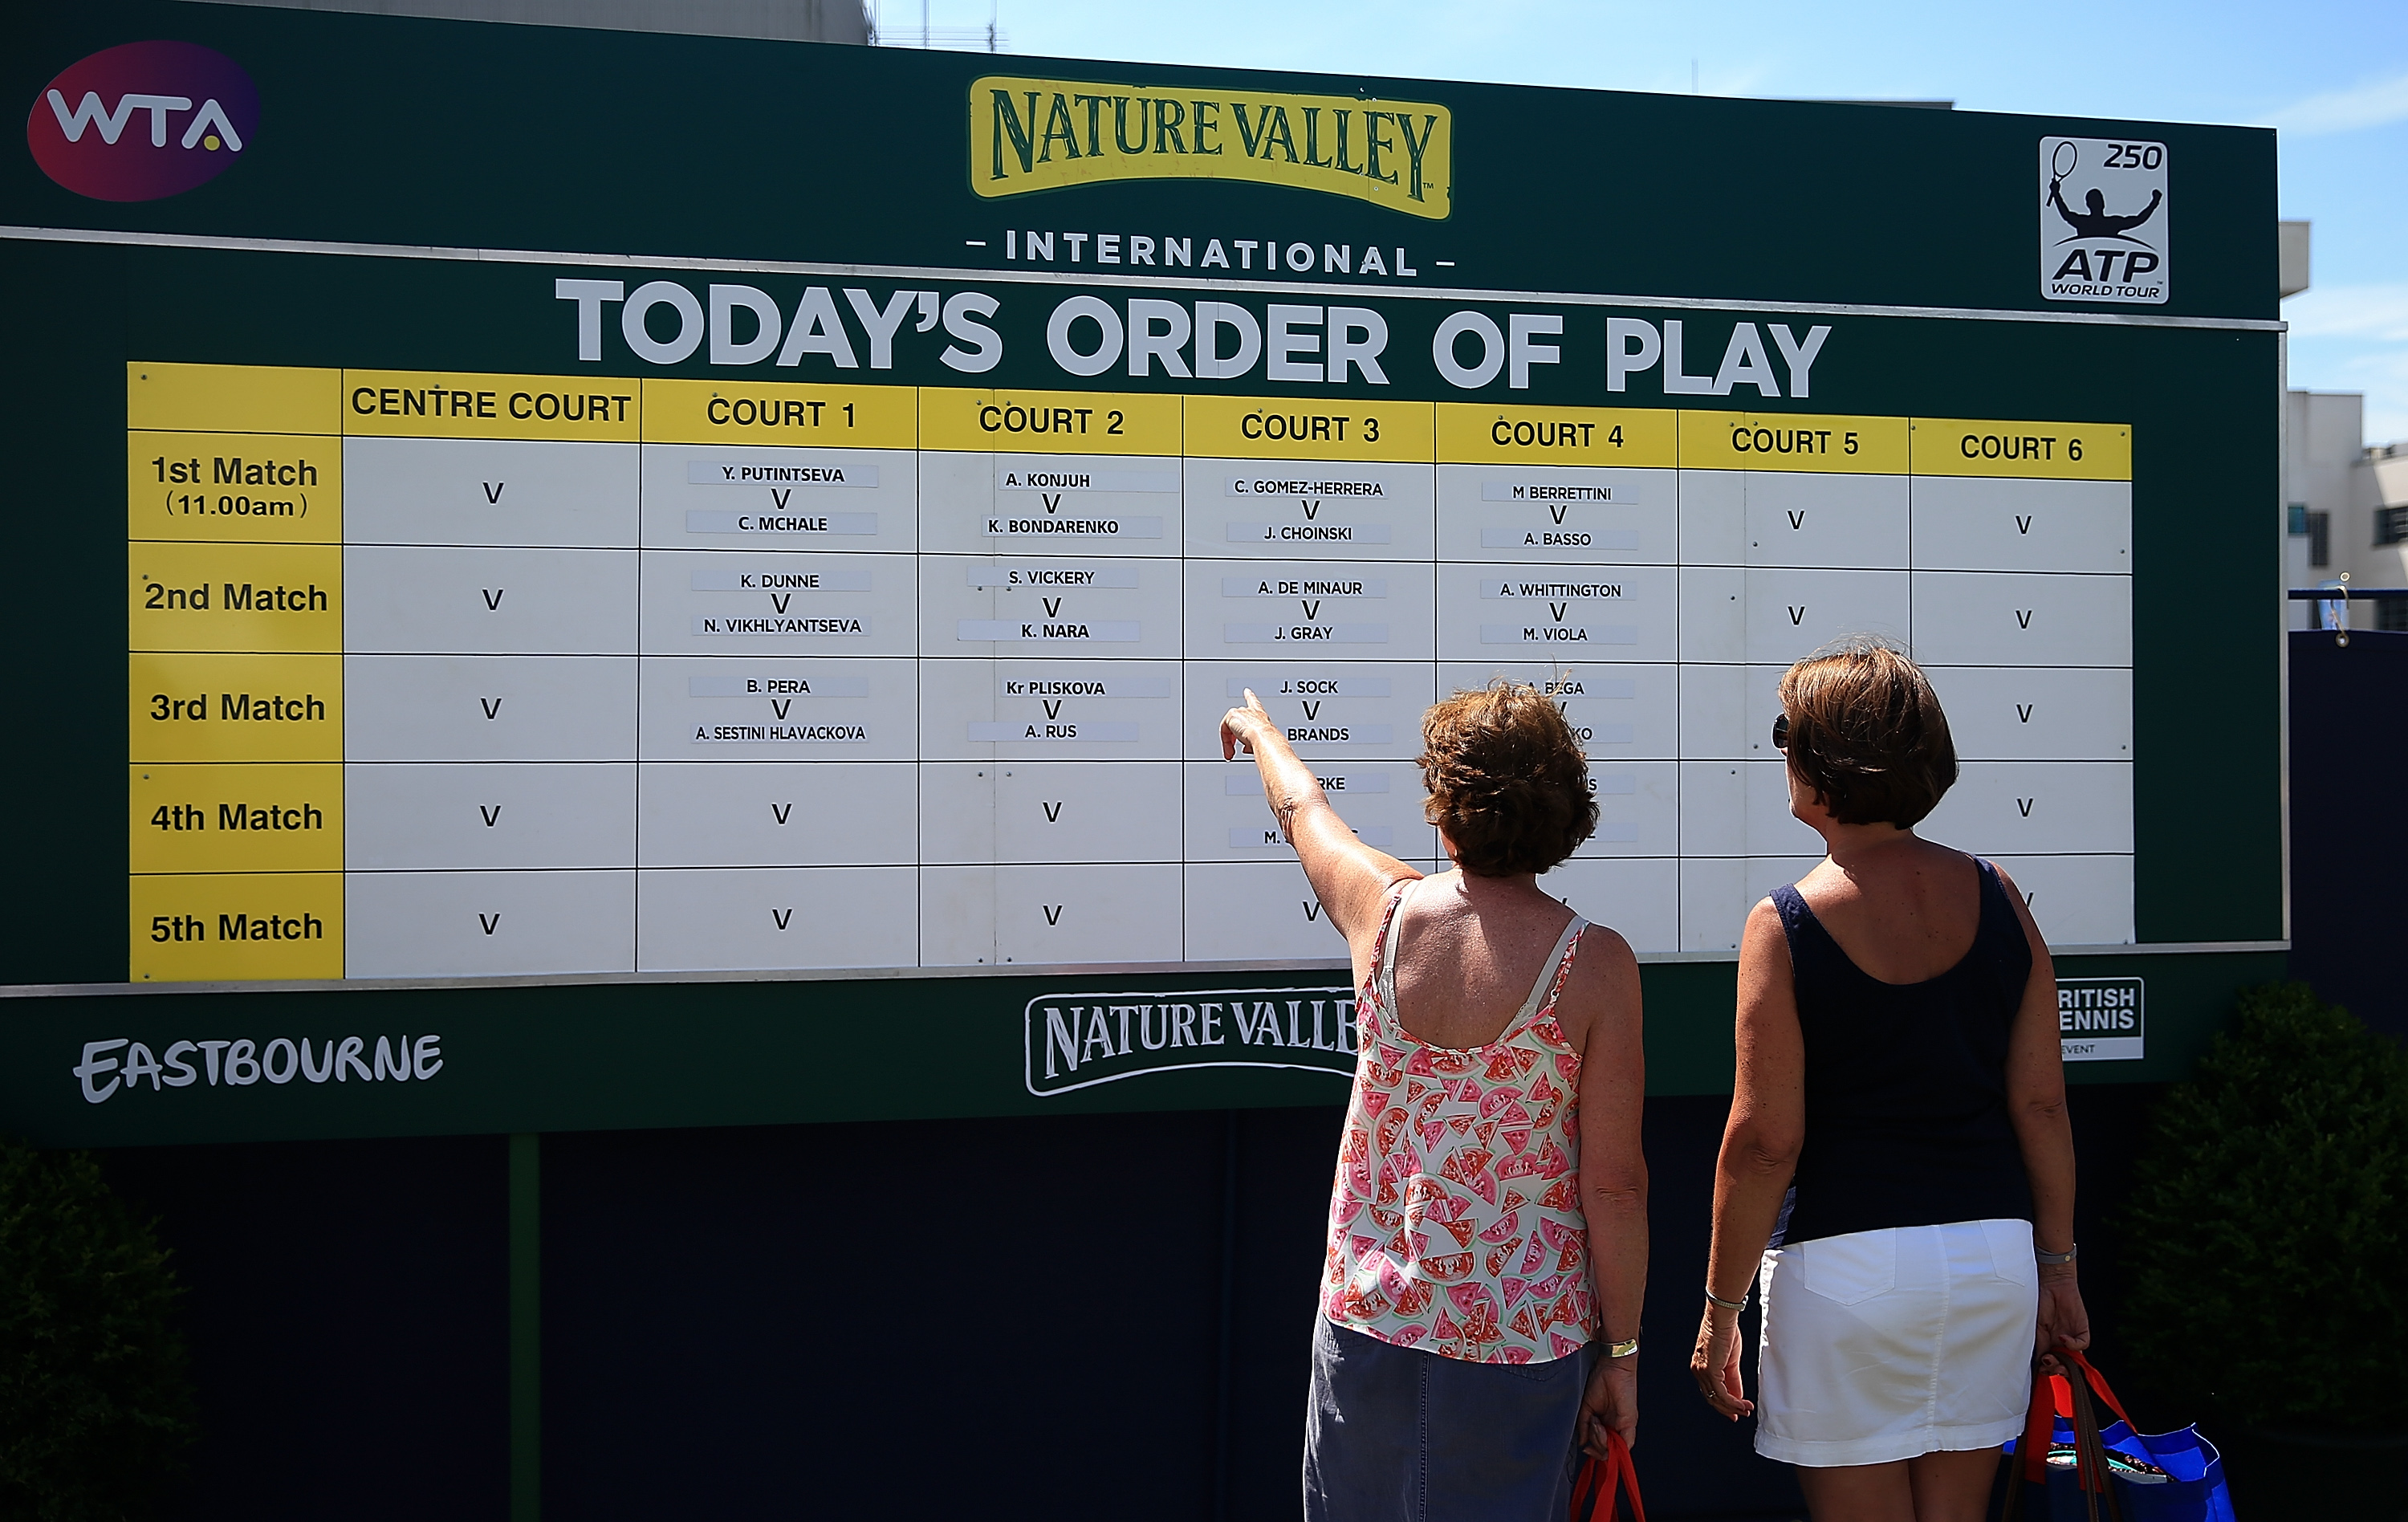 Fans check out Saturday's order of play